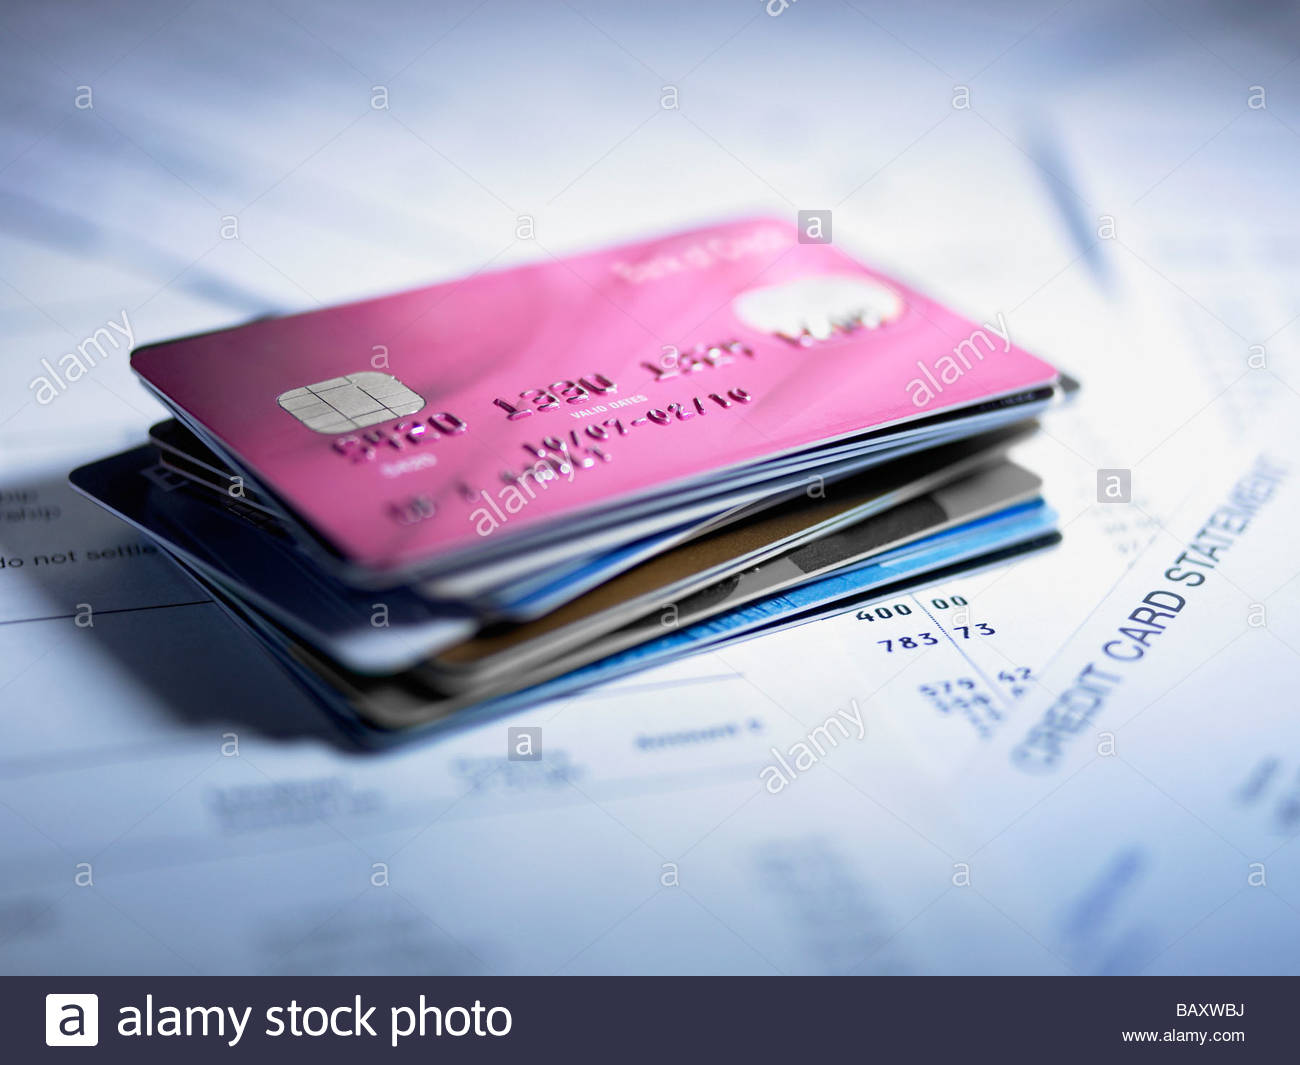 Close up of stack of credit cards - Stock Image